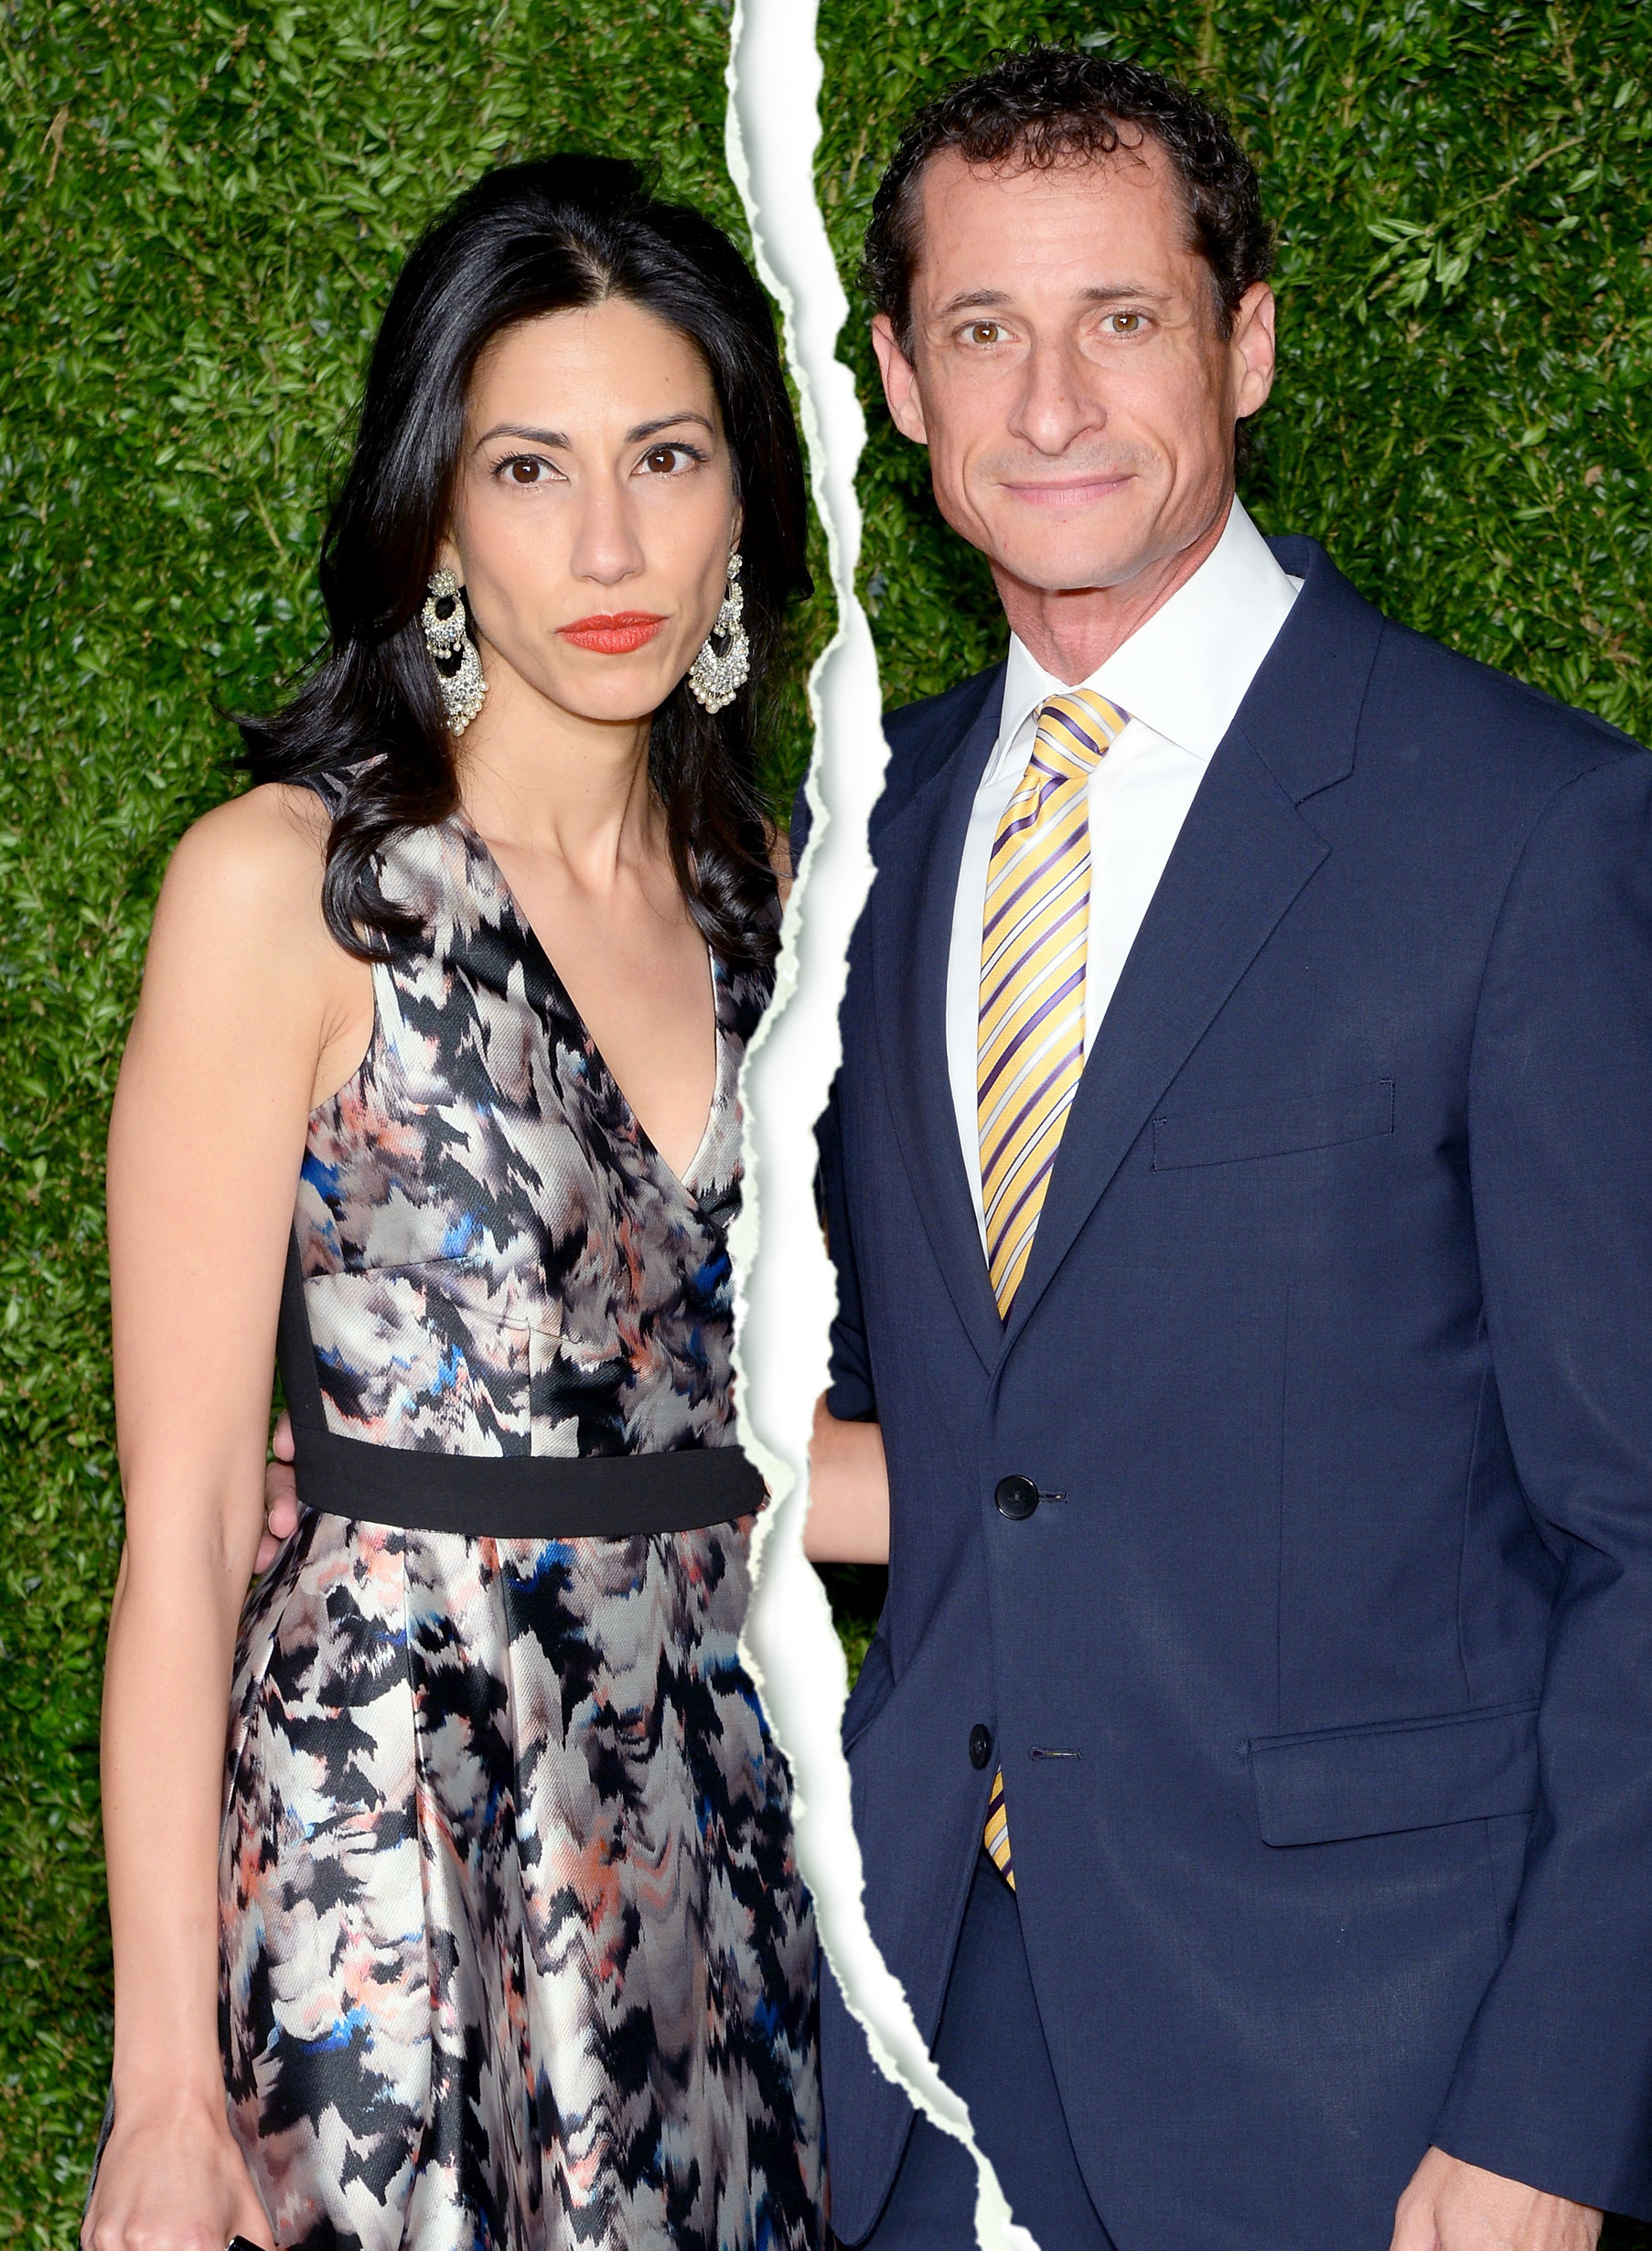 Anthony Weiner And Huma Abedin End Divorce Suit - The Forward